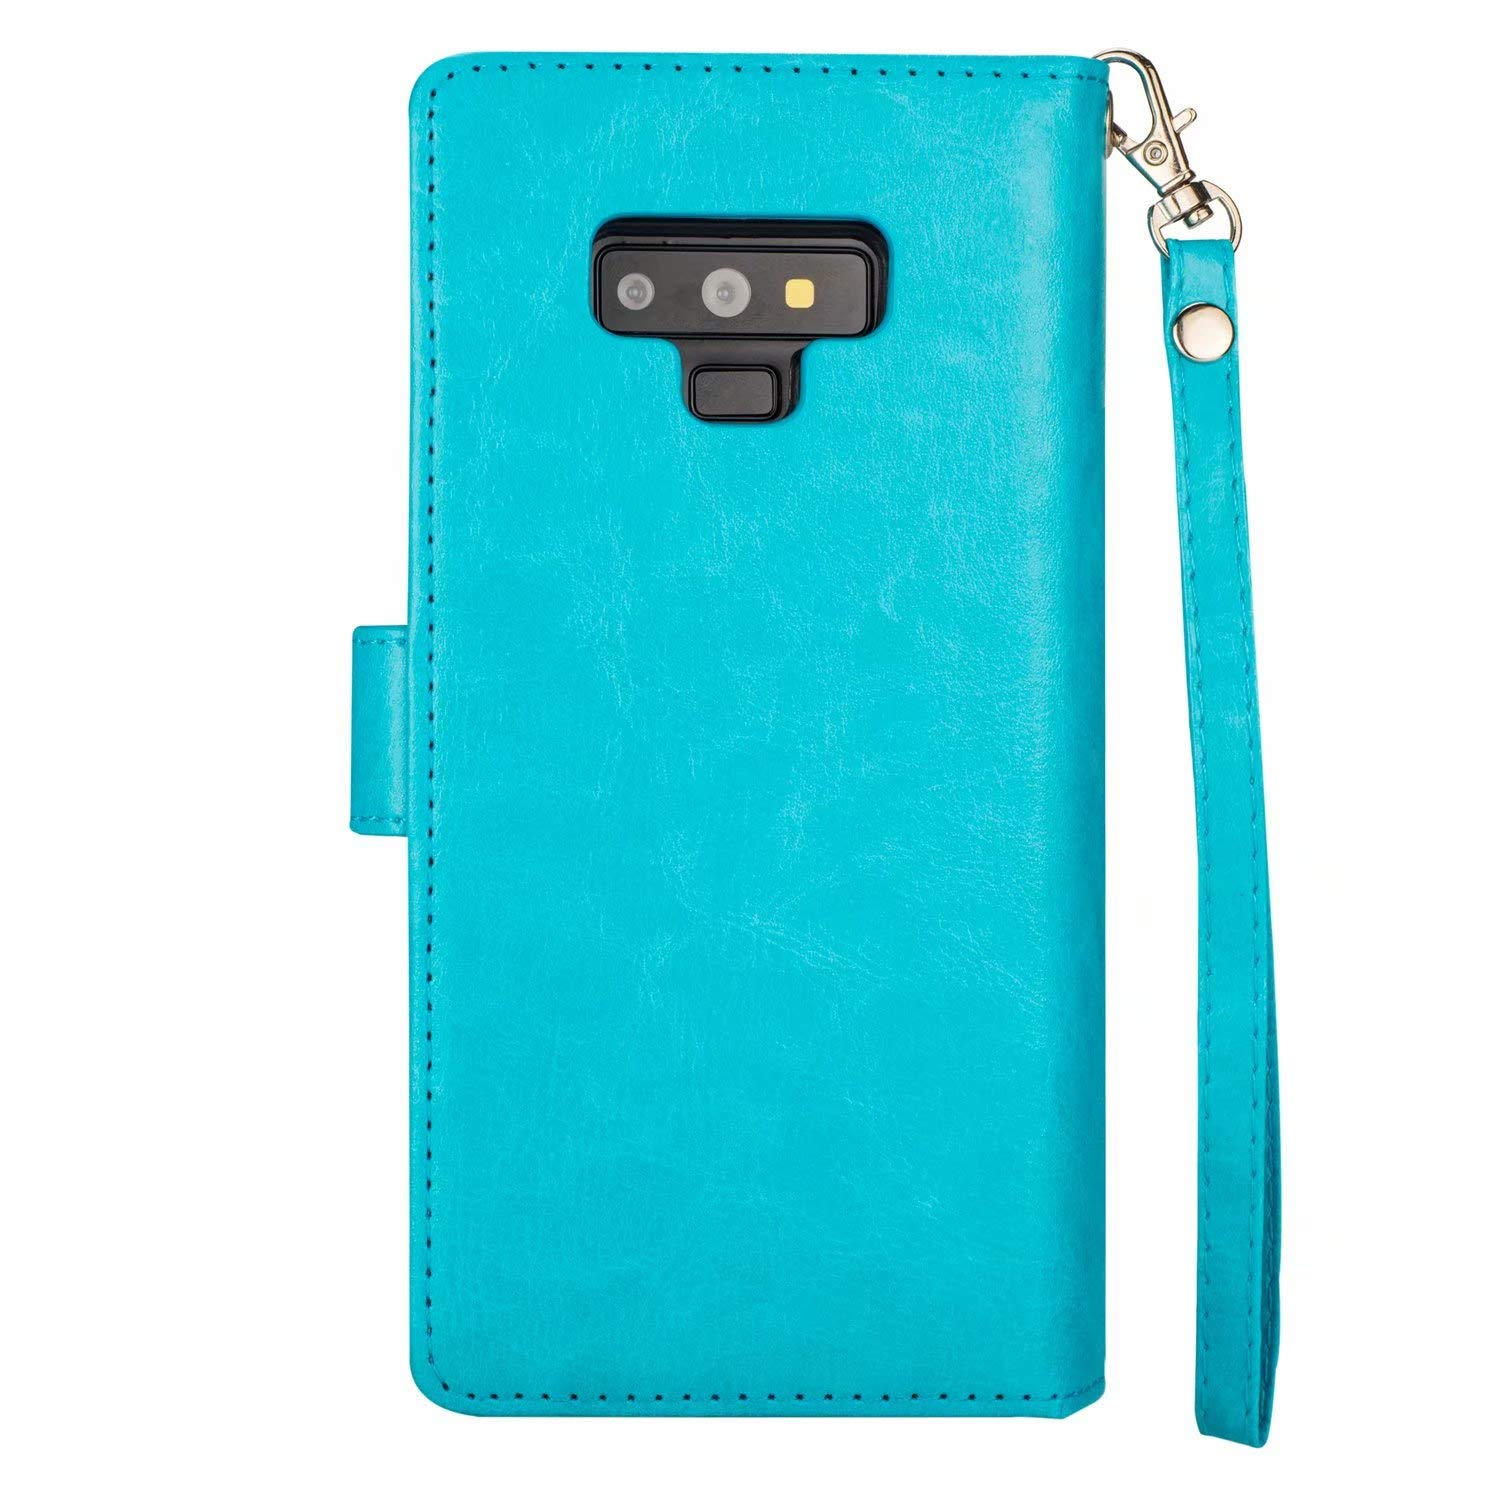 SUPZY Leather Detachable Magnetic Flip 9 Card Slots Holder Galaxy Note 9 Wallet Case